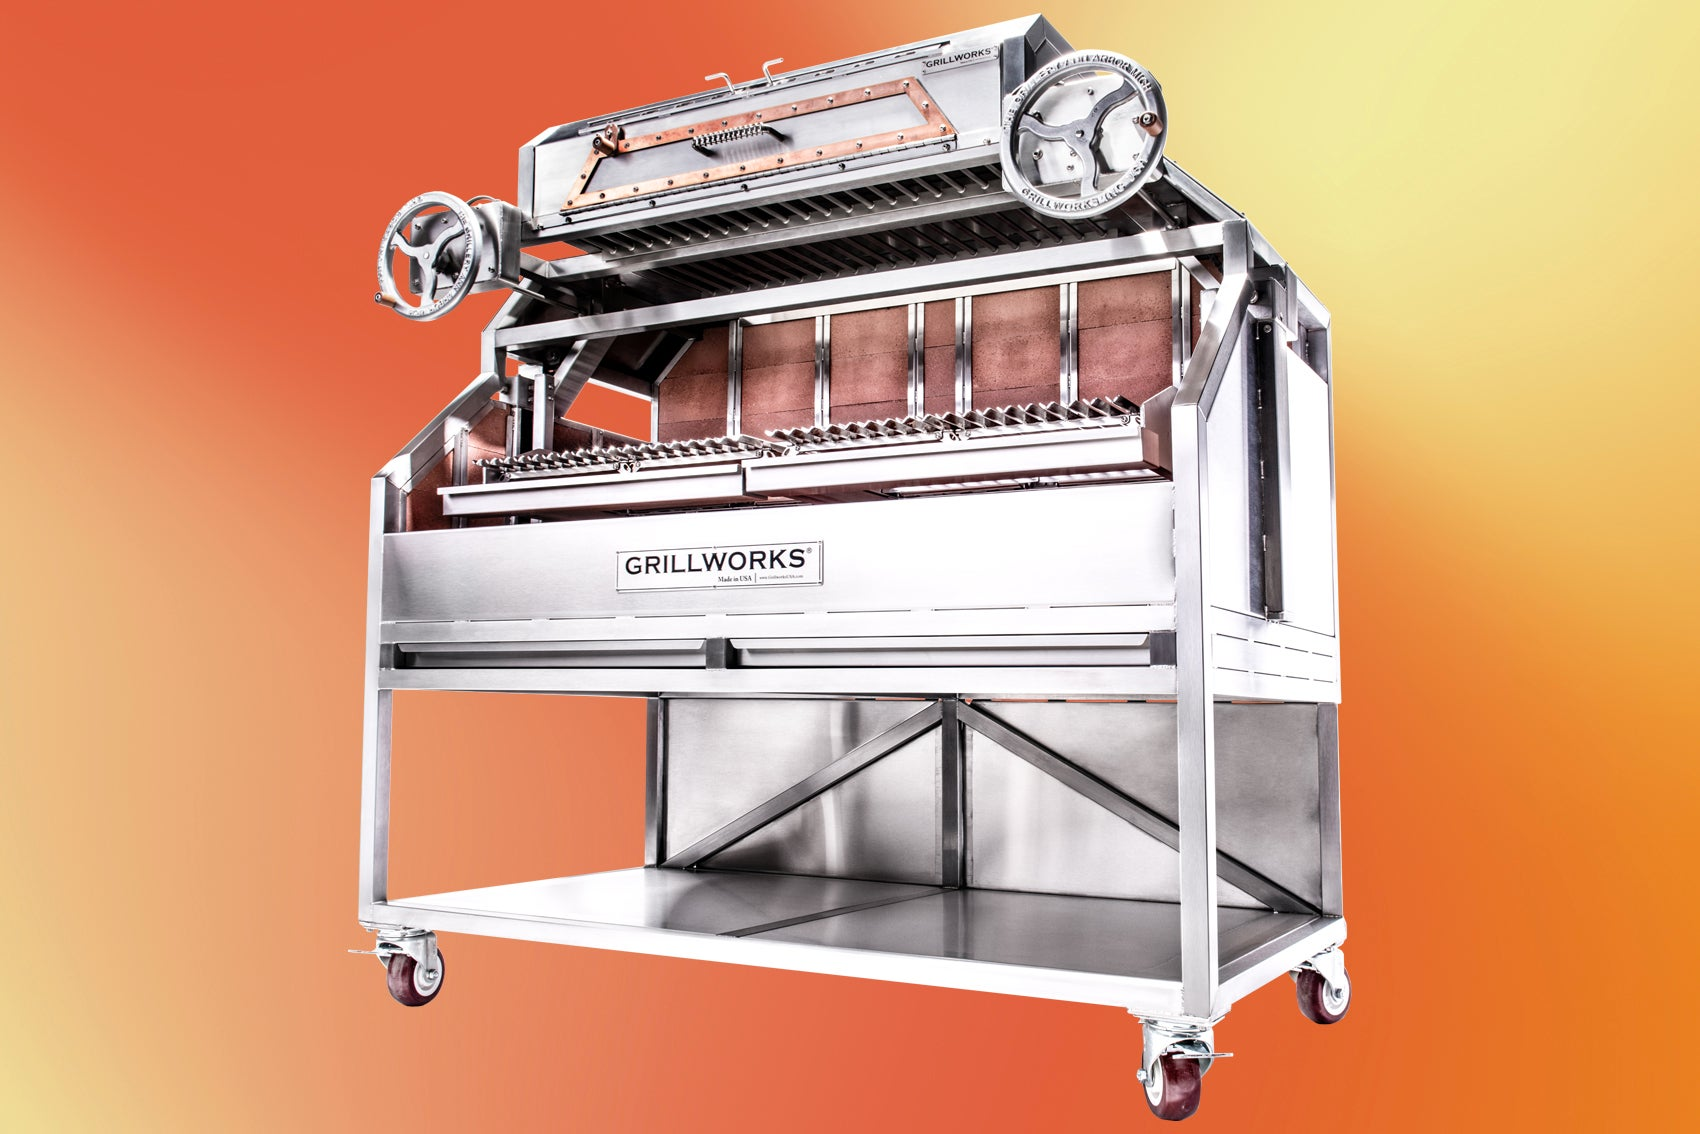 Grillworks grill